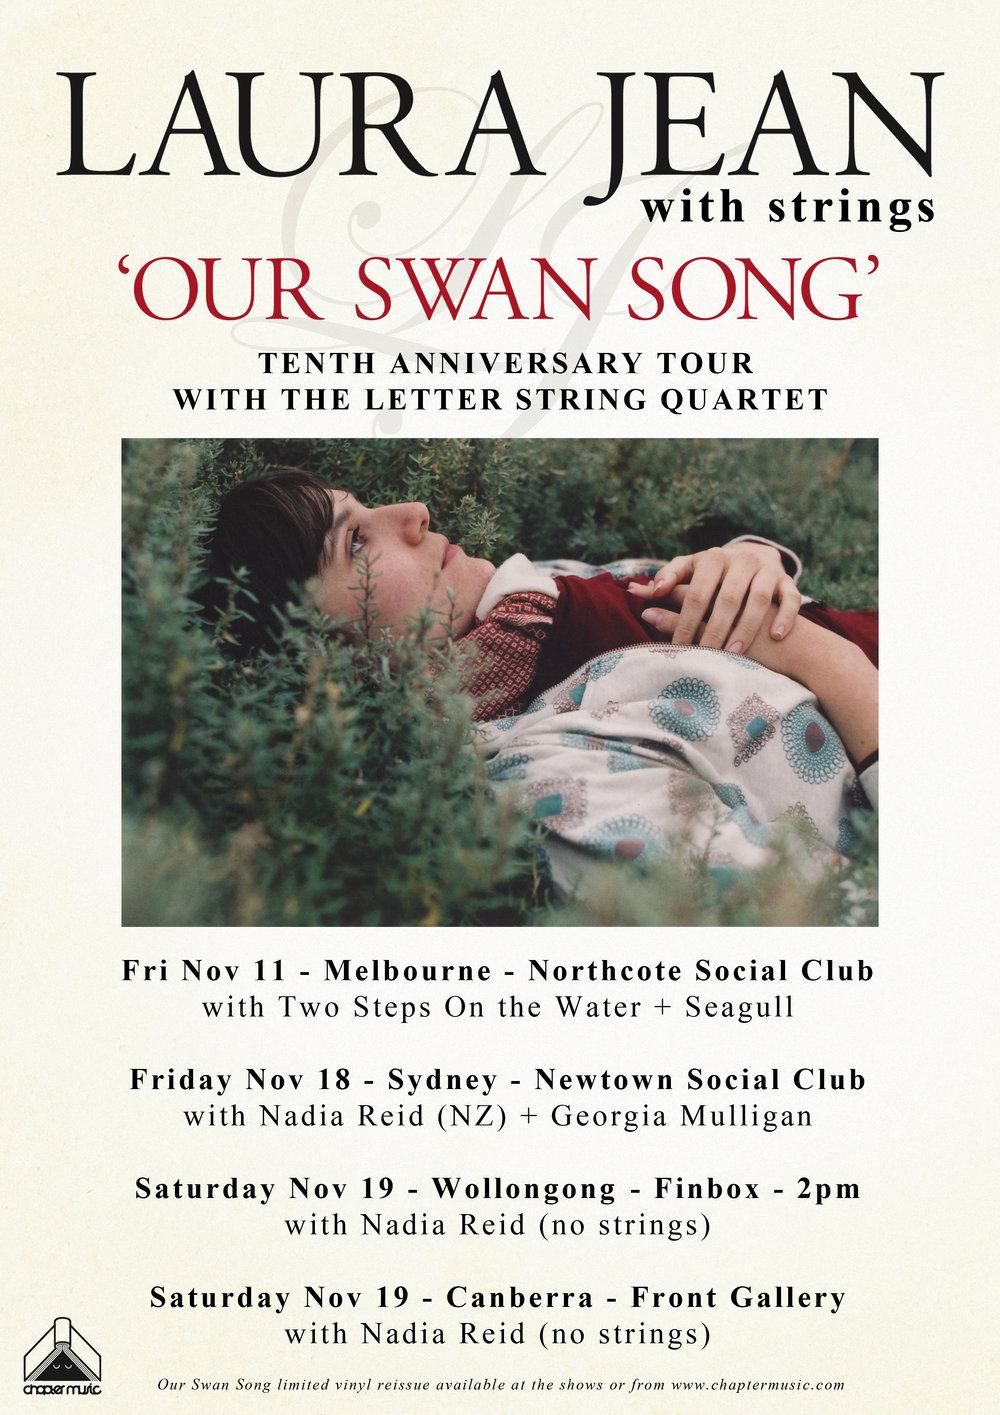 Laura Jean - Our Swan Song Tour